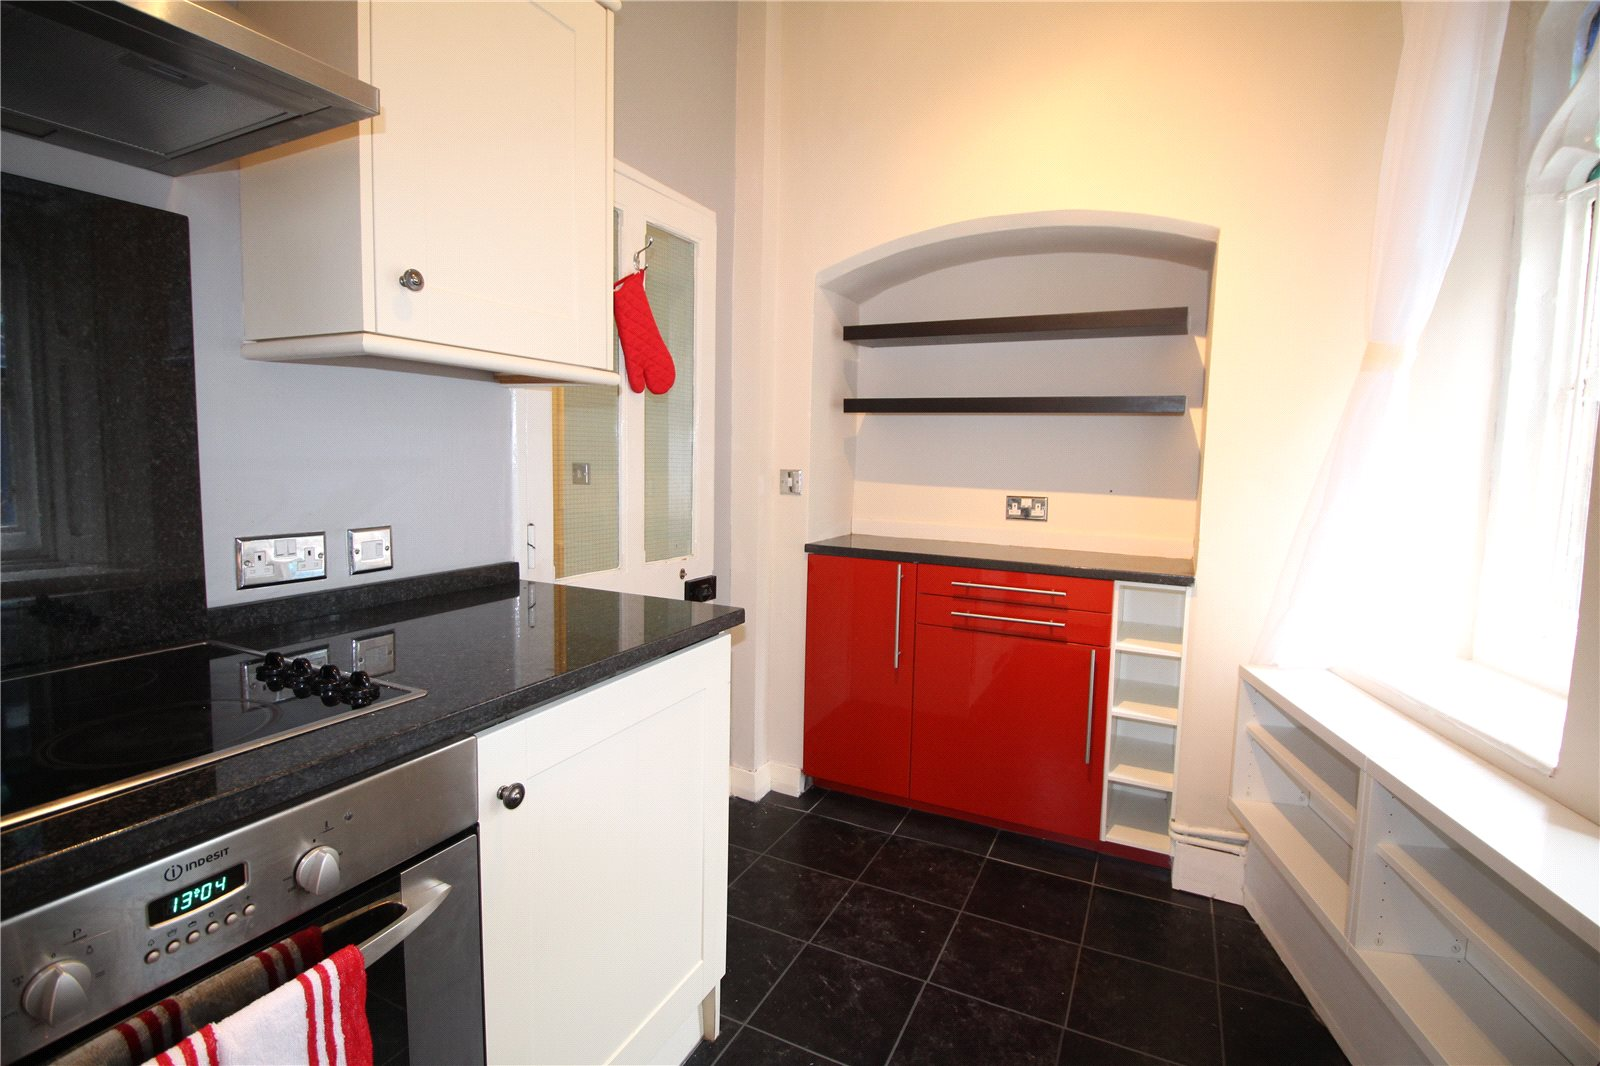 Cj Hole Clifton Old Studio Flat For Sale In The Three